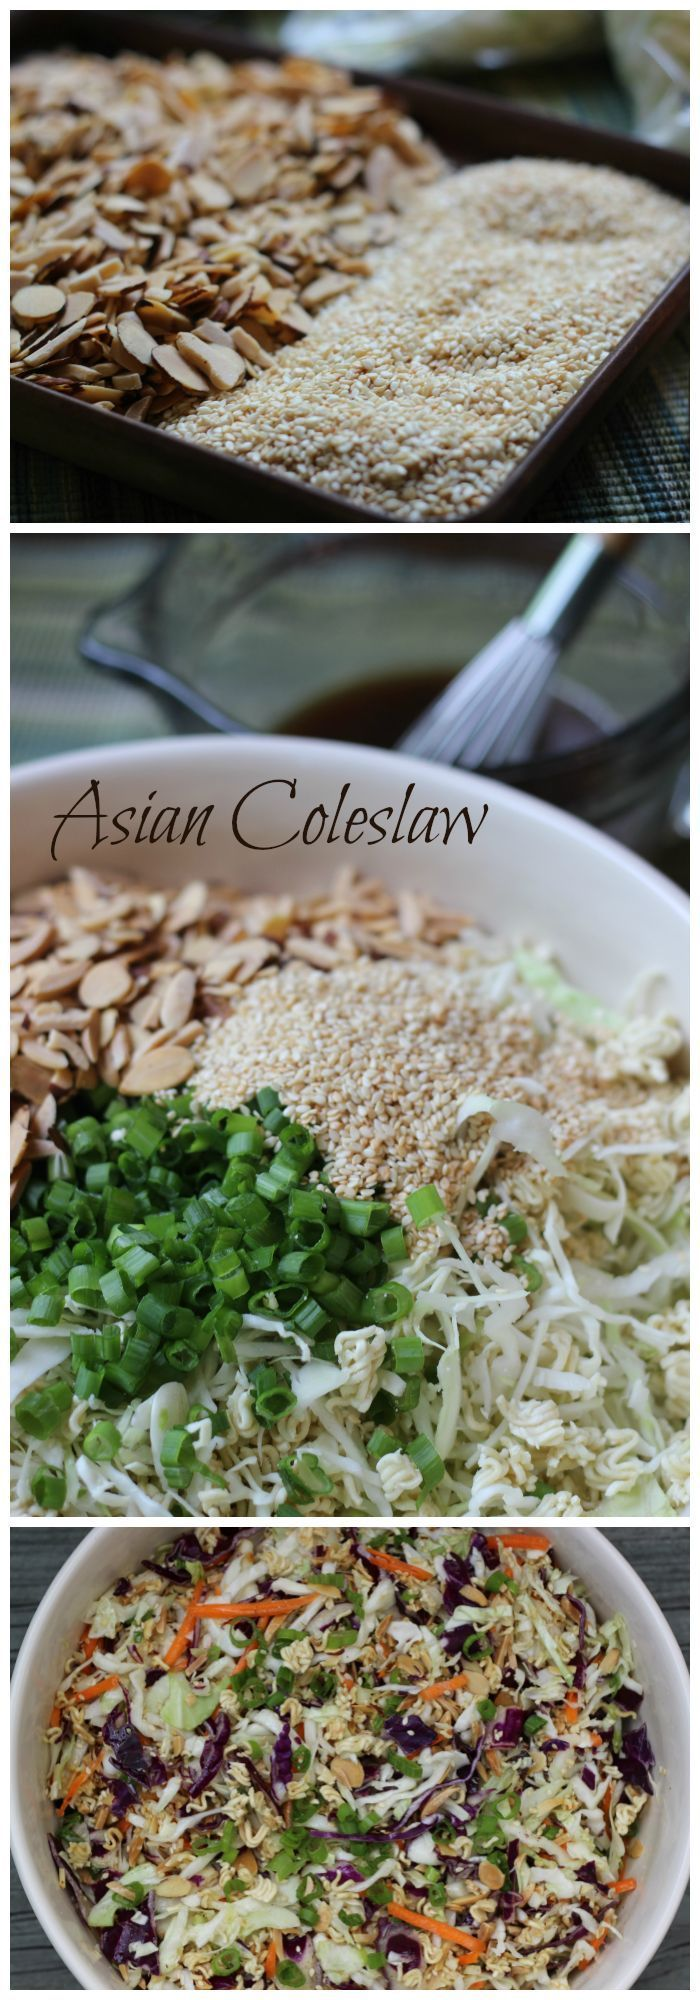 Asian Coleslaw with Ramen Noodles recipe. A healthy recipe, tangy and crunchy, that will feed a crowd | http://ChaosIsBliss.com